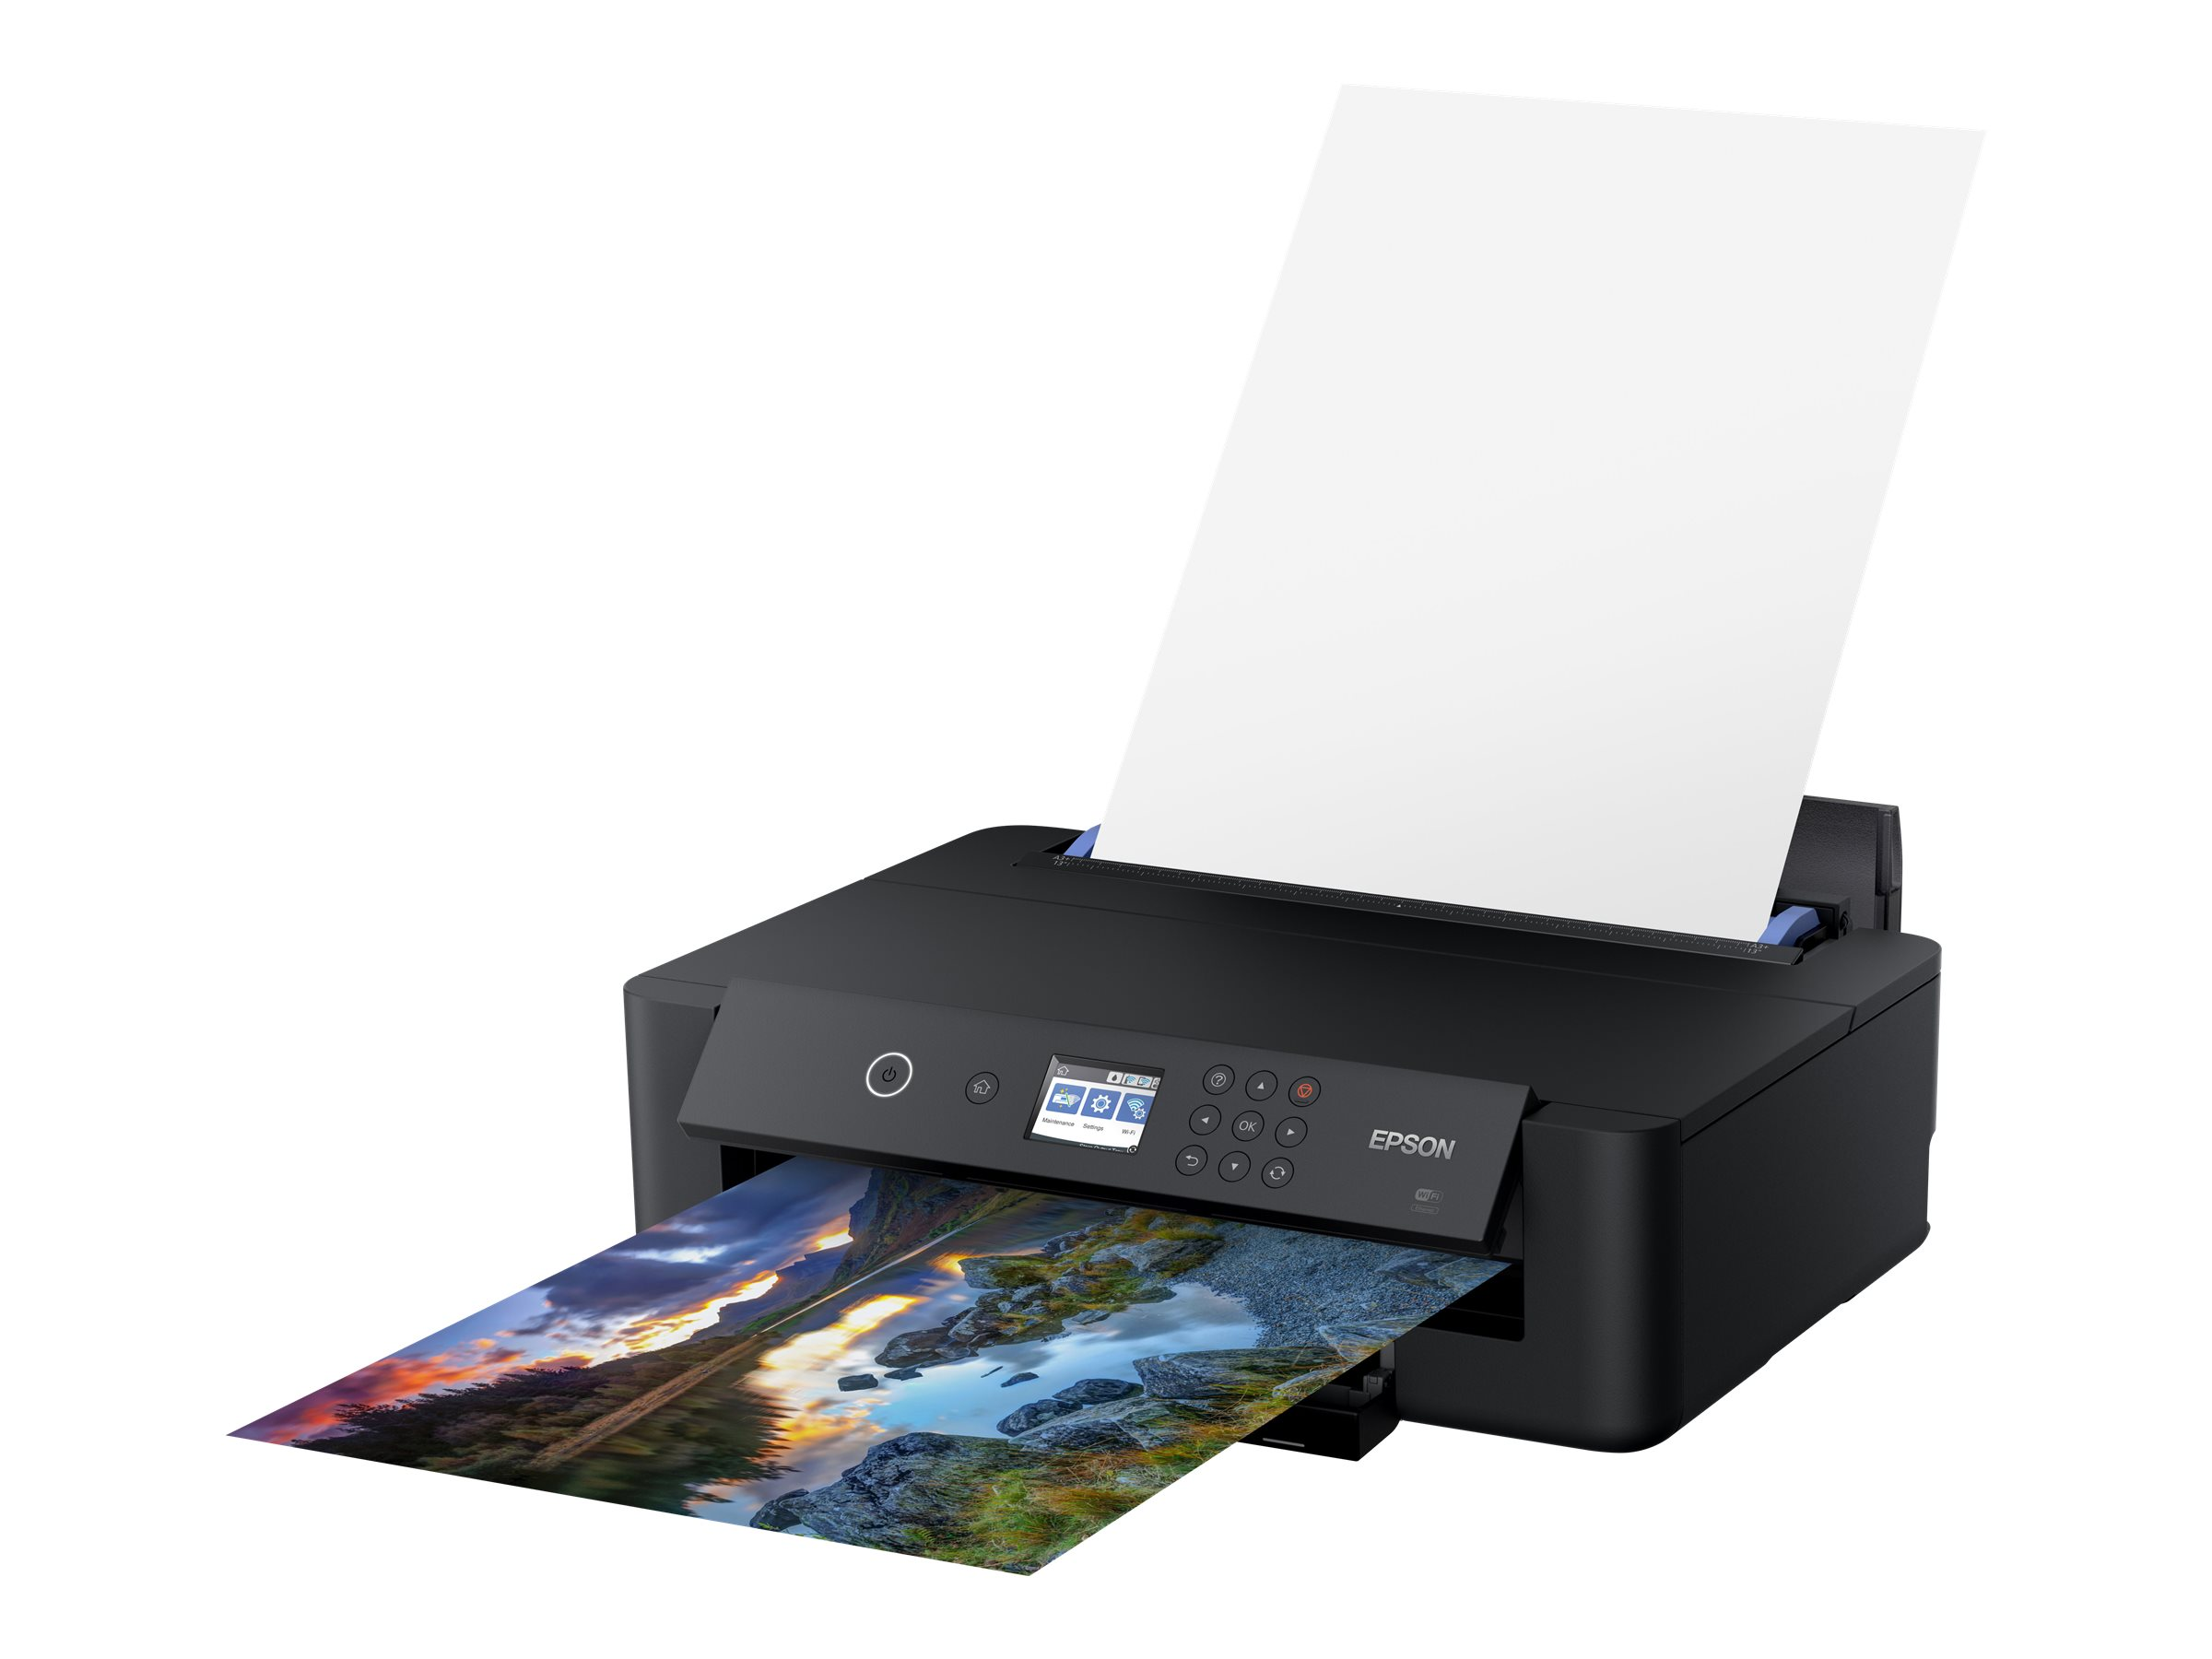 Epson Expression Photo HD XP-15000 - printer - color - ink-jet